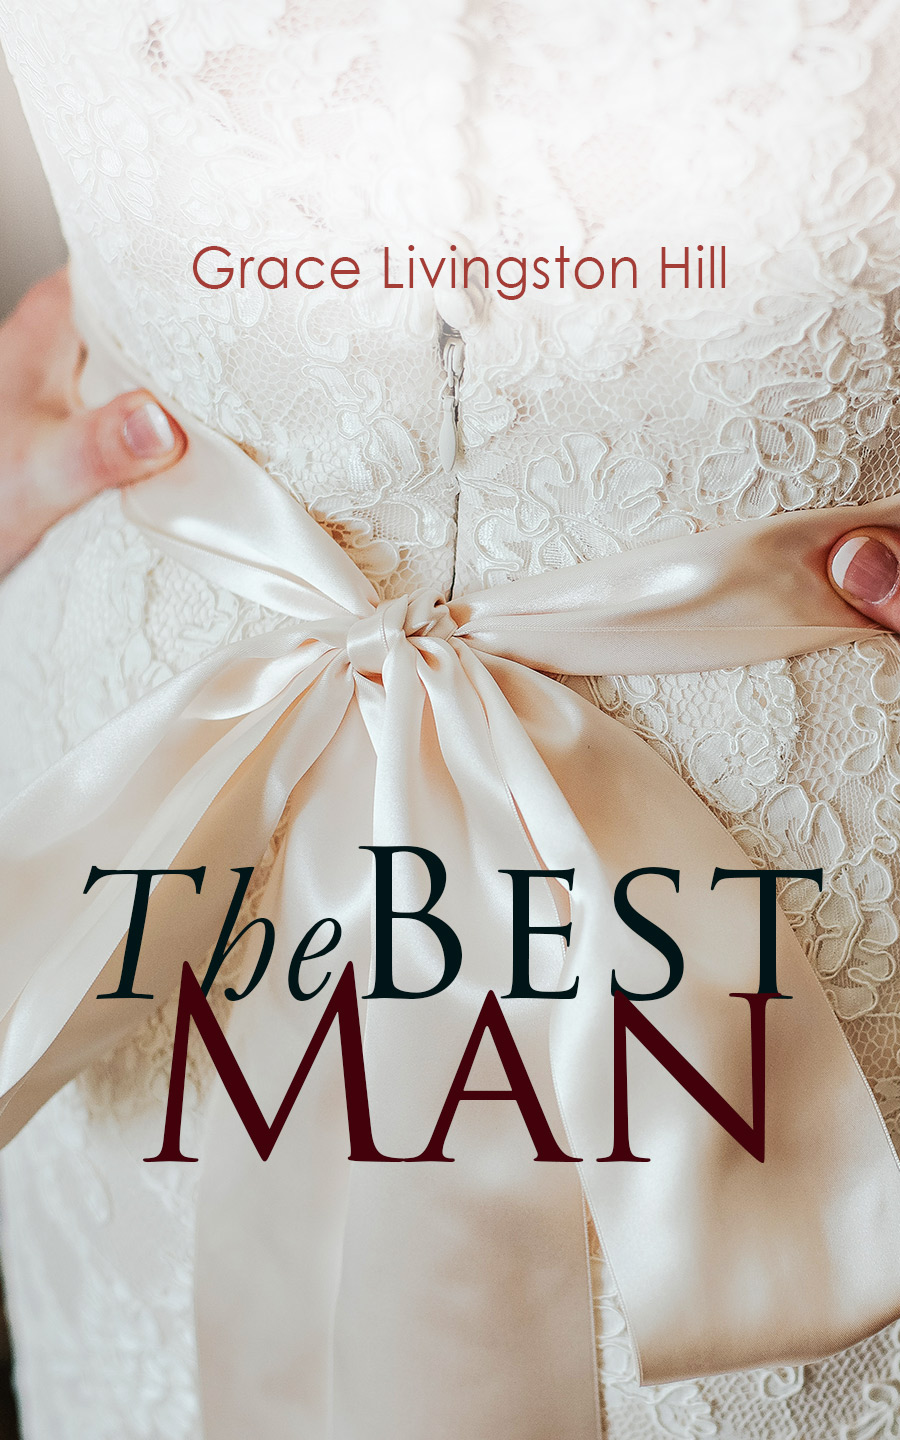 цена Grace Livingston Hill The Best Man онлайн в 2017 году